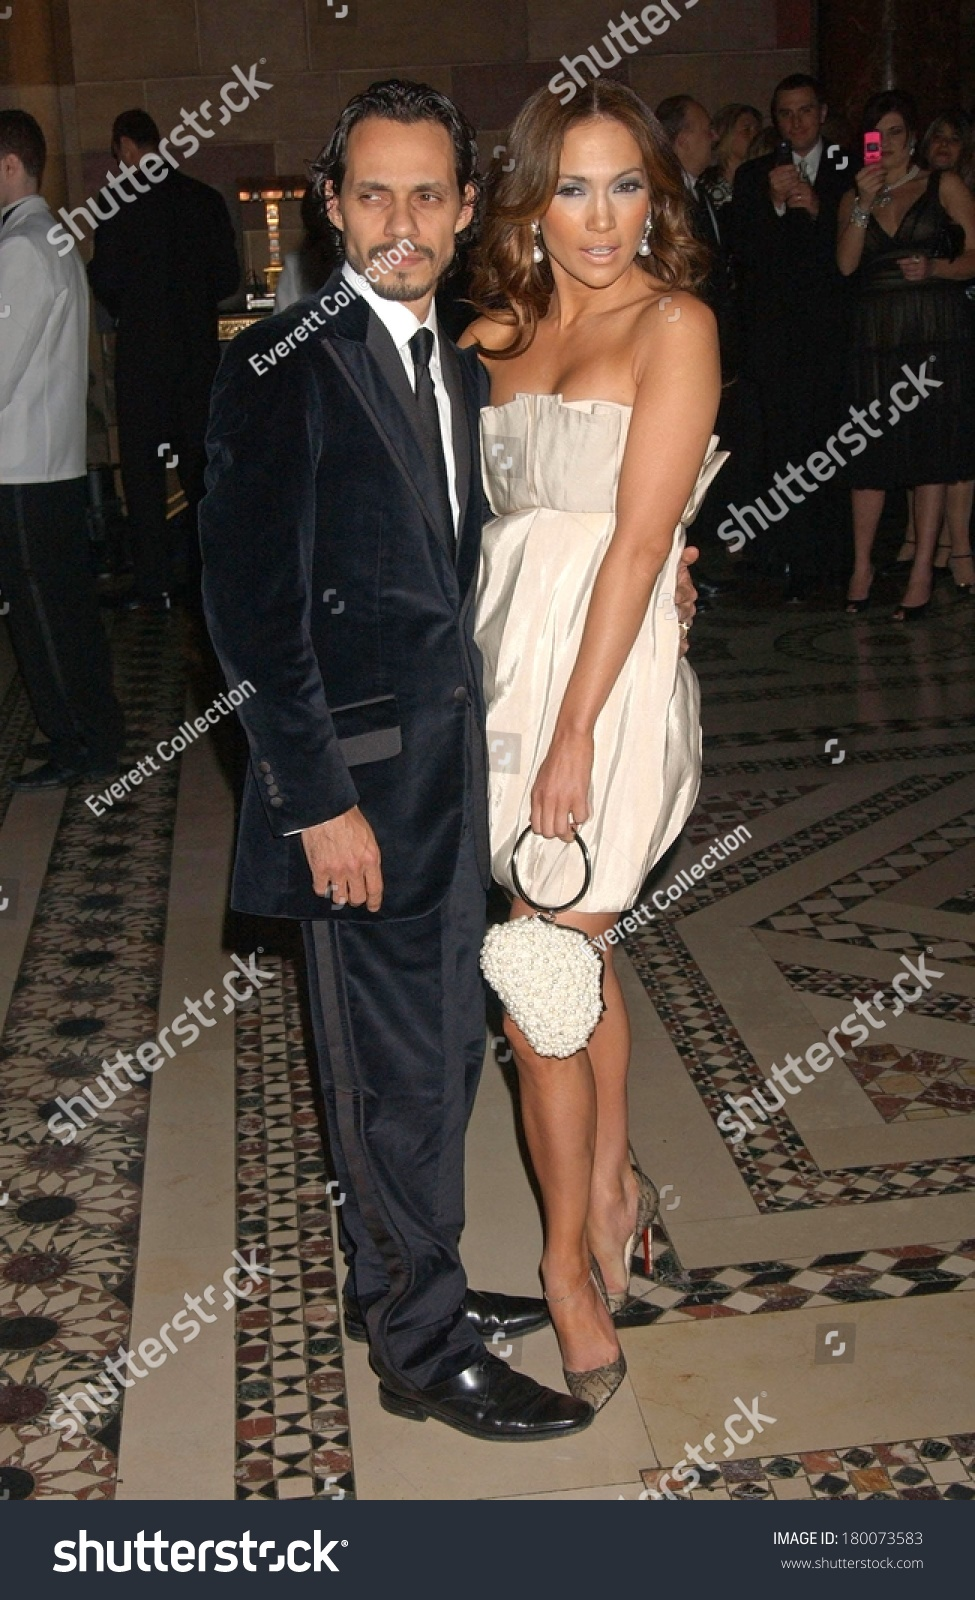 ¿Cuánto mide Marc Anthony? - Altura - Real height Stock-photo-marc-anthony-jennifer-lopez-attending-ace-accessories-council-awards-th-annual-gala-cipriani-180073583